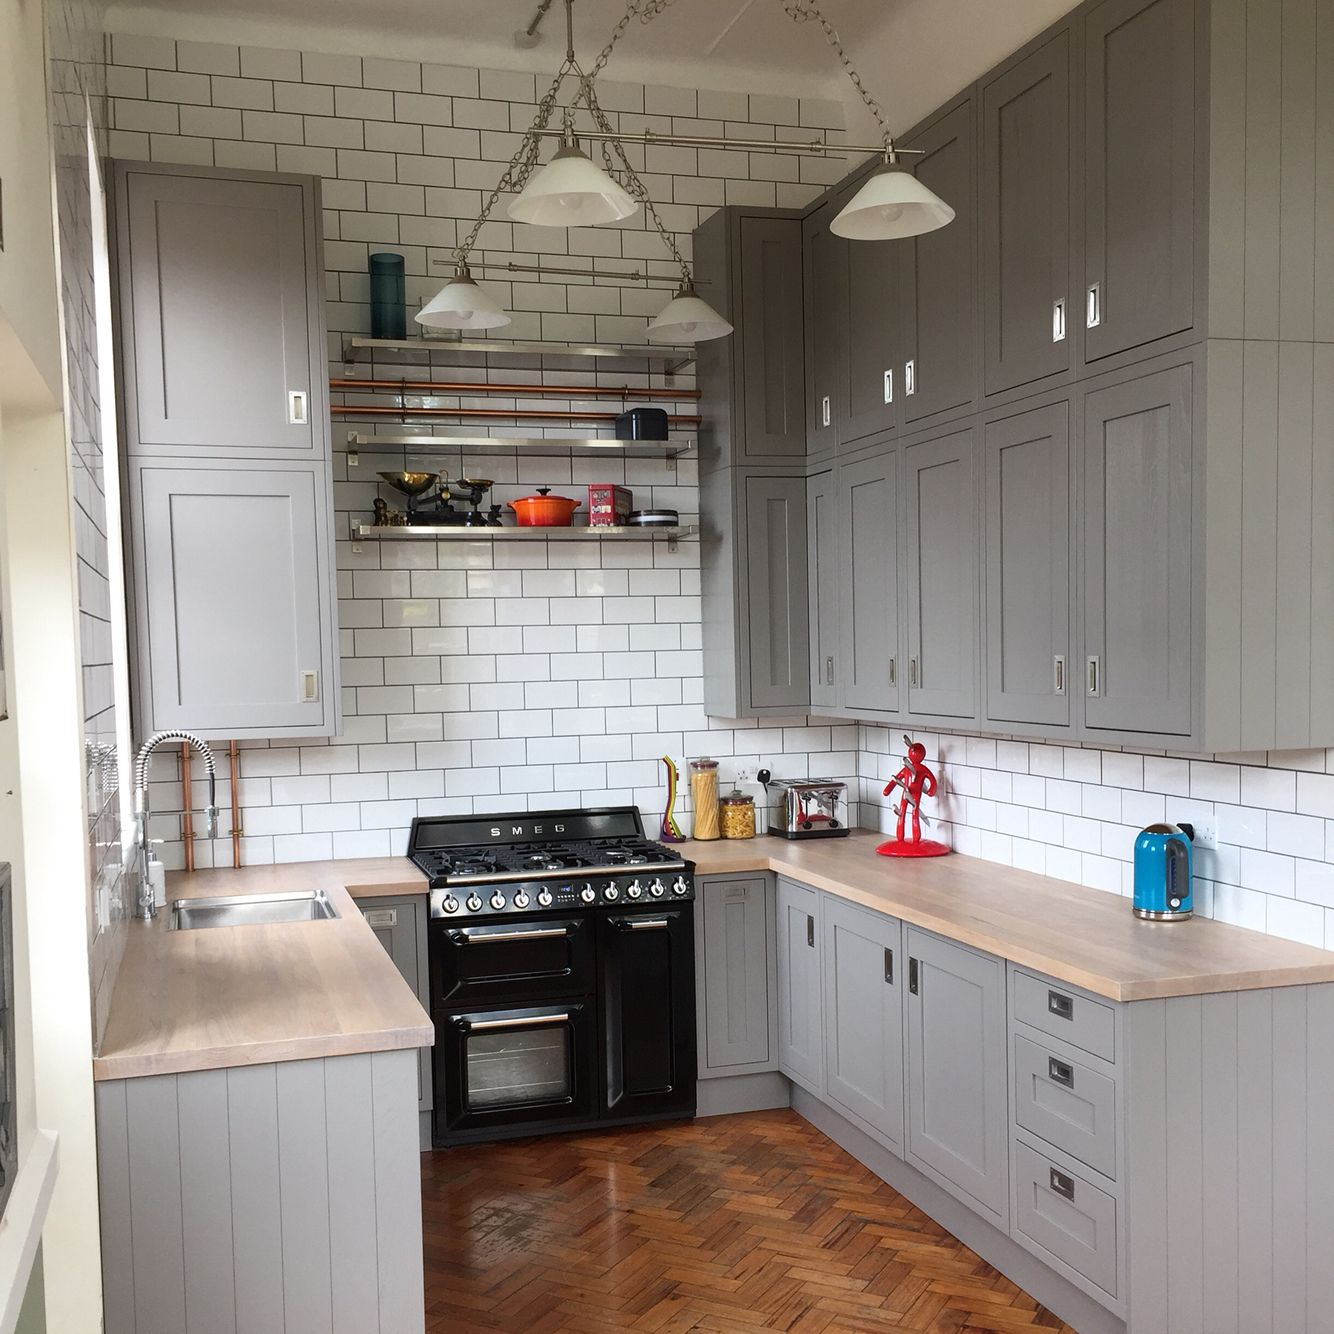 My Completed Kitchenb&q Carisbrook Taupe Greygray Framed Custom B & Q Kitchen Design Review